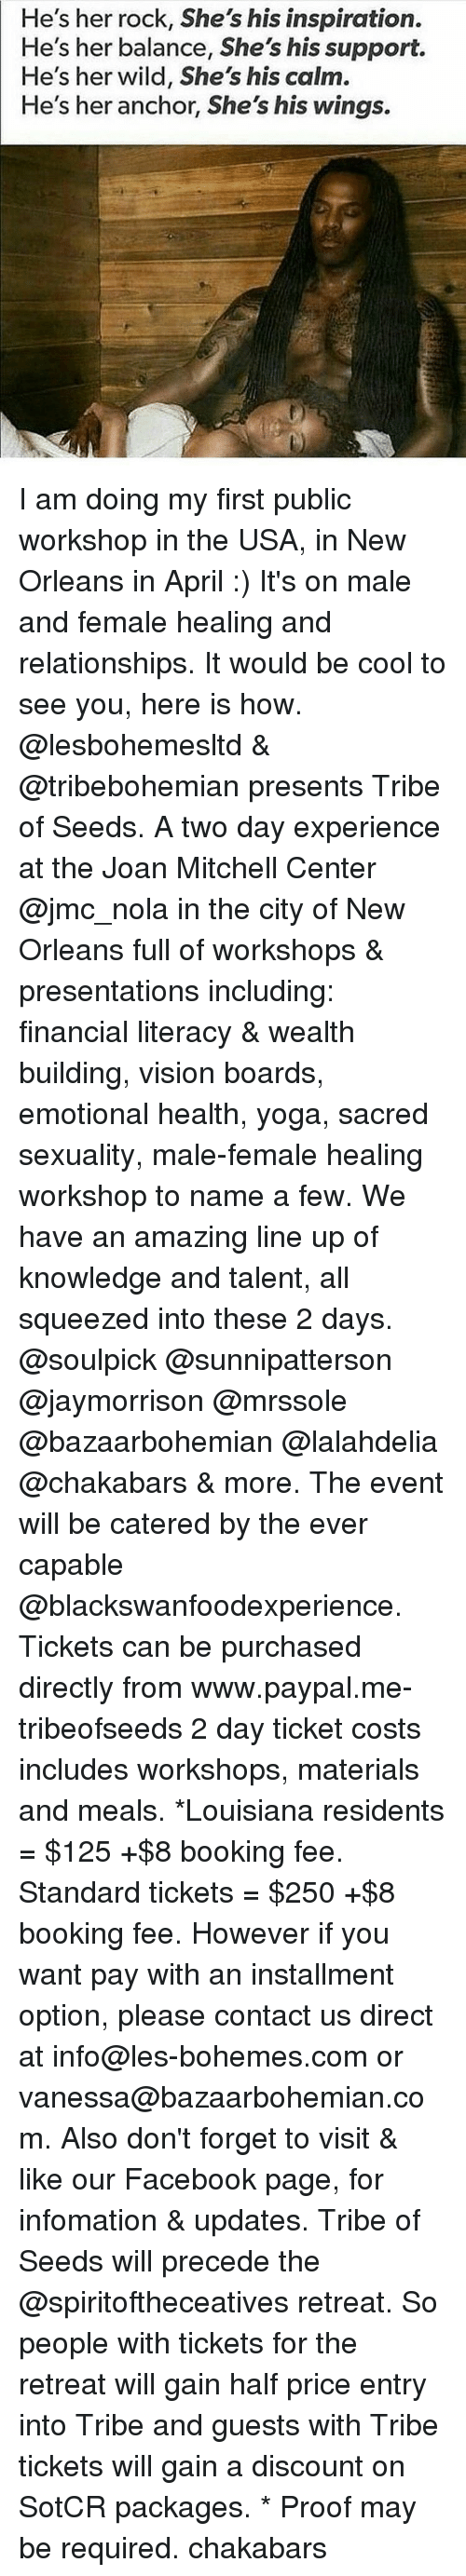 Memes, Louisiana, and Paypal: He's her rock, She's his inspiration.  He's her balance, She's his support.  He's her wild, She's his calm.  He's her anchor, She's his wings. I am doing my first public workshop in the USA, in New Orleans in April :) It's on male and female healing and relationships. It would be cool to see you, here is how. @lesbohemesltd & @tribebohemian presents Tribe of Seeds. A two day experience at the Joan Mitchell Center @jmc_nola in the city of New Orleans full of workshops & presentations including: financial literacy & wealth building, vision boards, emotional health, yoga, sacred sexuality, male-female healing workshop to name a few. We have an amazing line up of knowledge and talent, all squeezed into these 2 days. @soulpick @sunnipatterson @jaymorrison @mrssole @bazaarbohemian @lalahdelia @chakabars & more. The event will be catered by the ever capable @blackswanfoodexperience. Tickets can be purchased directly from www.paypal.me-tribeofseeds 2 day ticket costs includes workshops, materials and meals. *Louisiana residents = $125 +$8 booking fee. Standard tickets = $250 +$8 booking fee. However if you want pay with an installment option, please contact us direct at info@les-bohemes.com or vanessa@bazaarbohemian.com. Also don't forget to visit & like our Facebook page, for infomation & updates. Tribe of Seeds will precede the @spiritoftheceatives retreat. So people with tickets for the retreat will gain half price entry into Tribe and guests with Tribe tickets will gain a discount on SotCR packages. * Proof may be required. chakabars